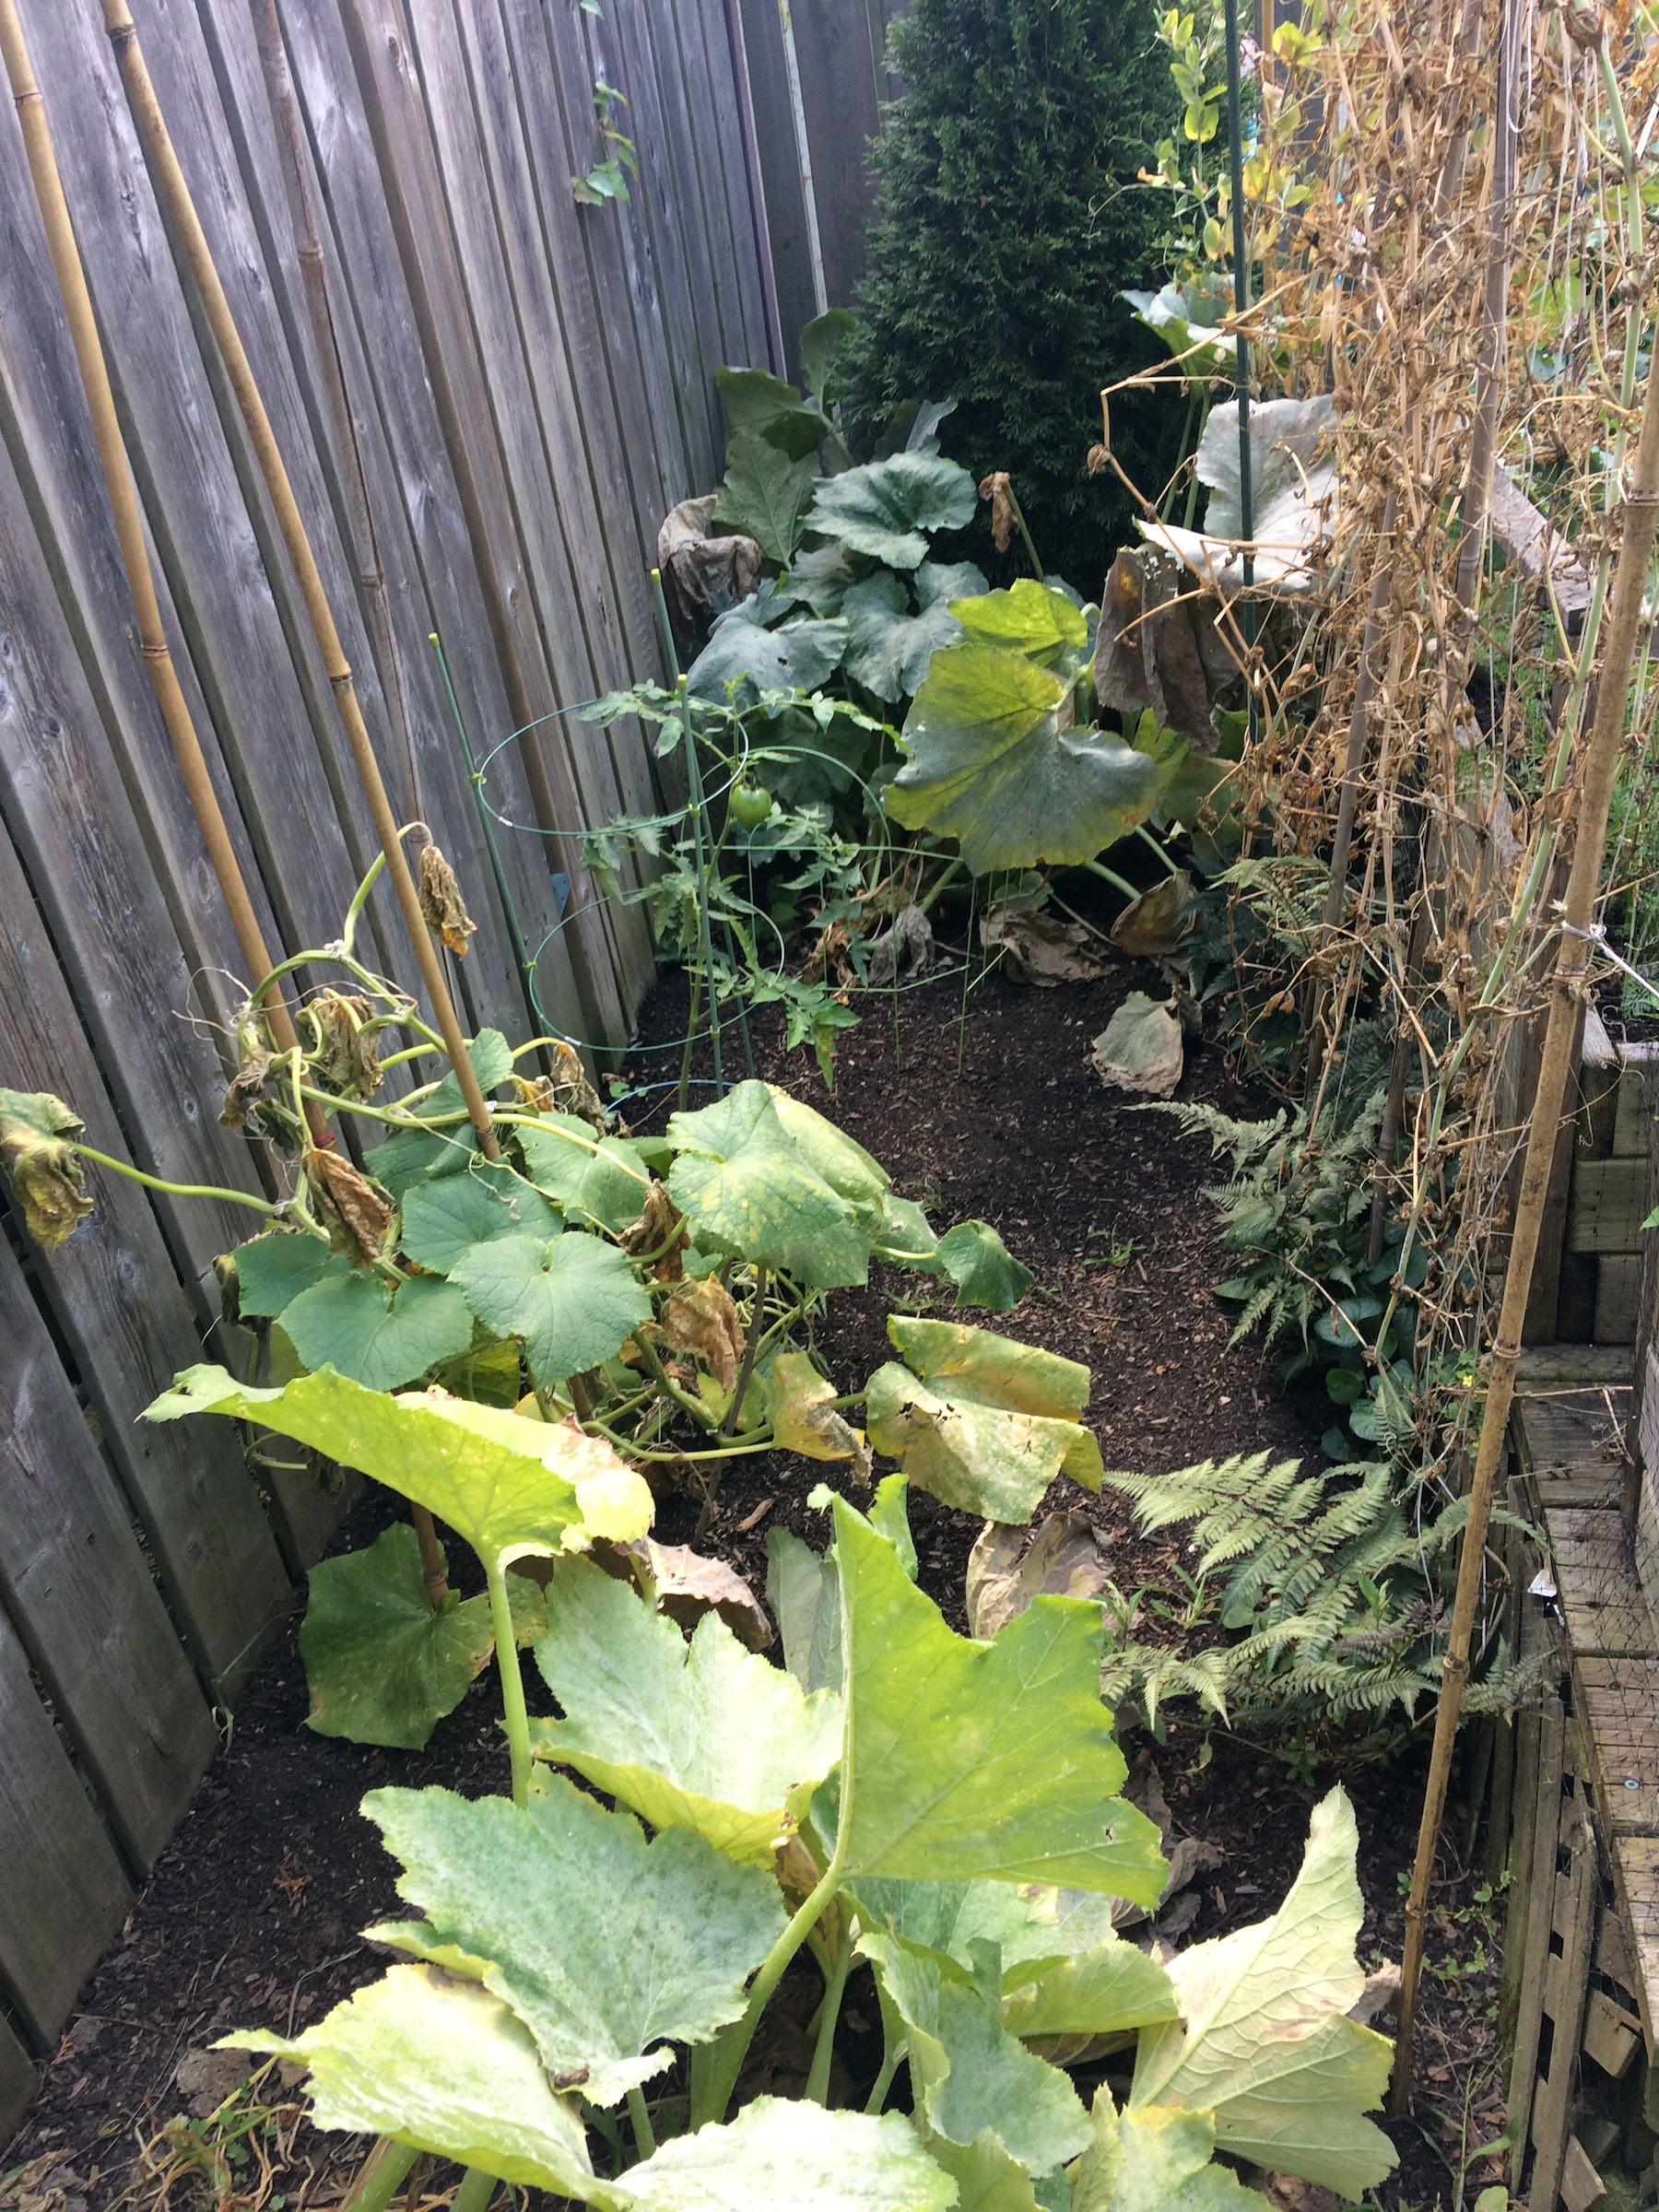 A Few Thoughts on Permaculture